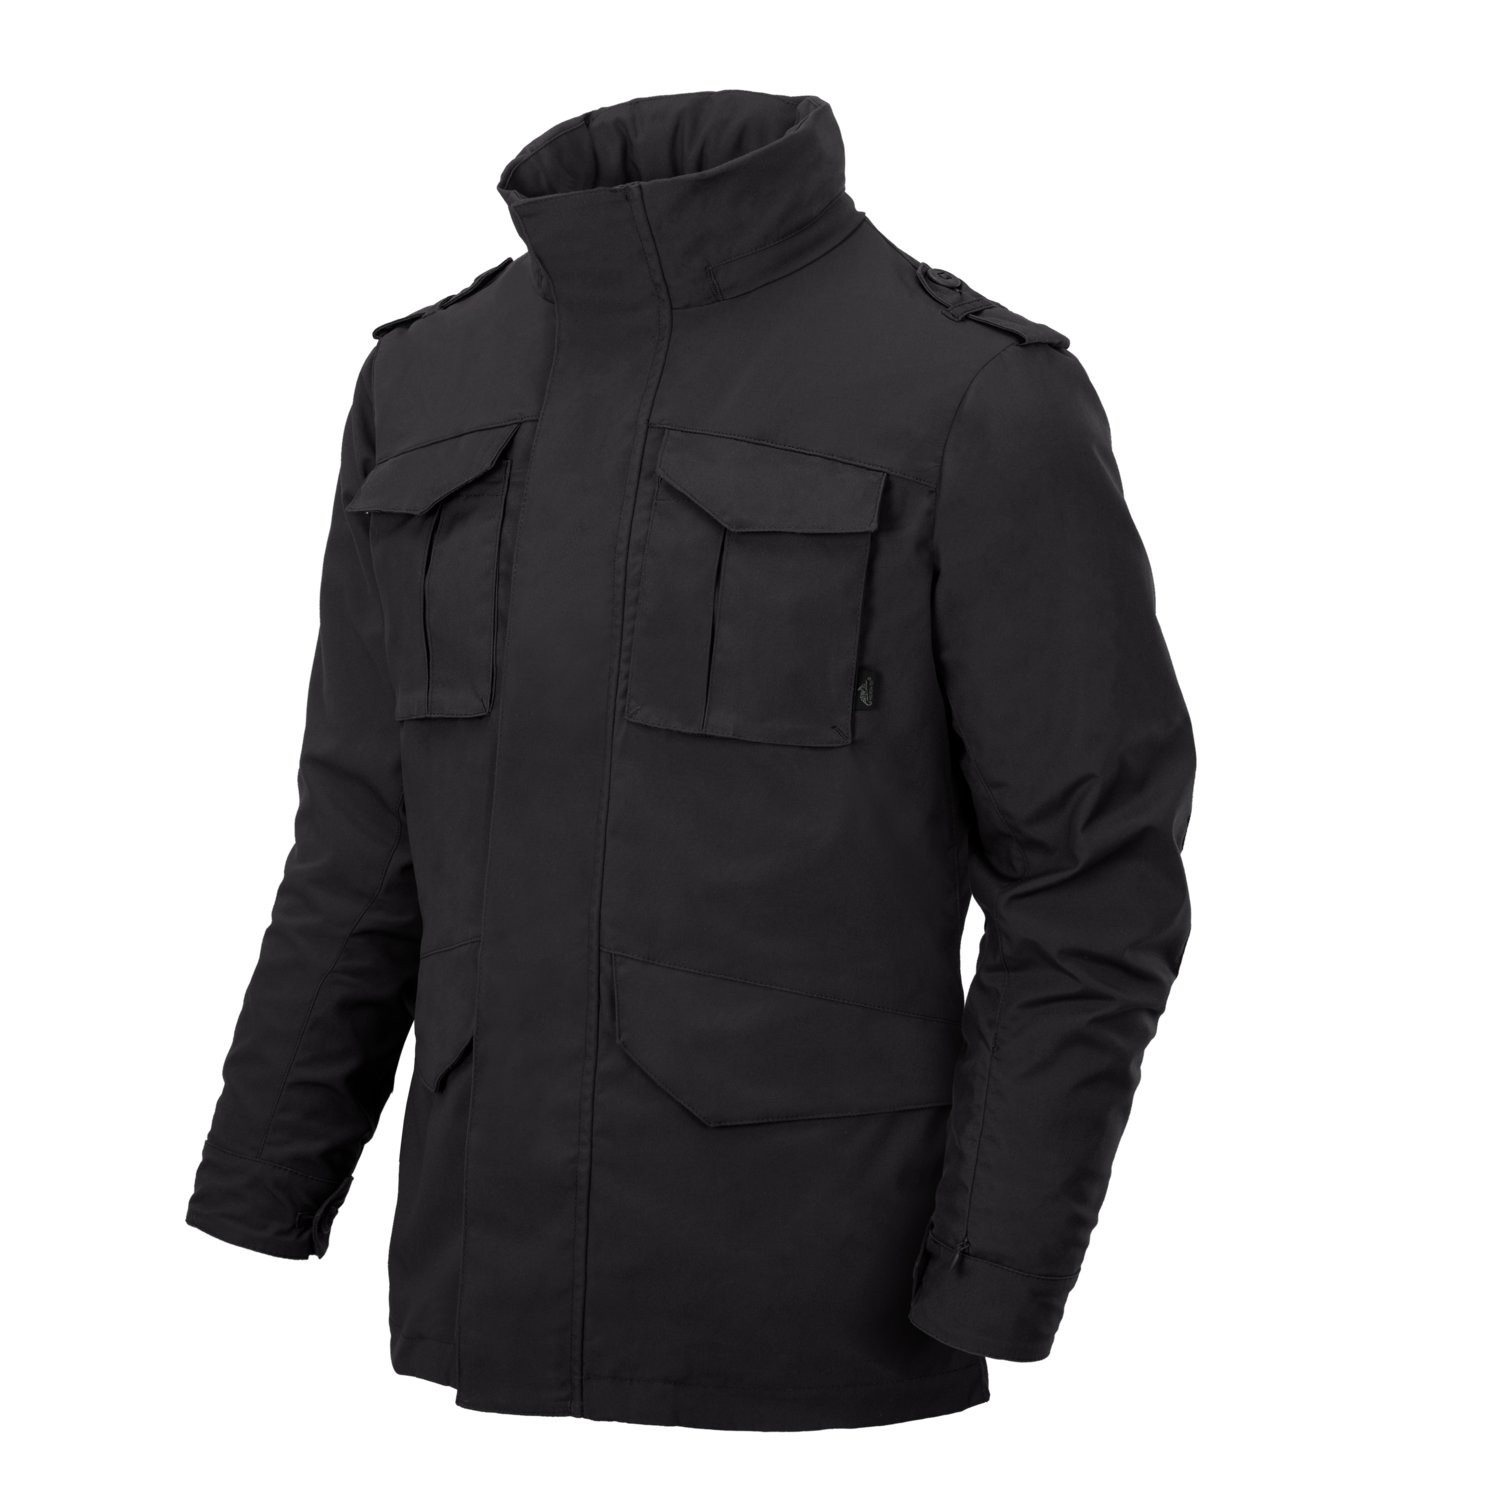 Jacket COVERT M-65 ASH GREY Helikon-Tex® KU-C65-DC-85 L-11